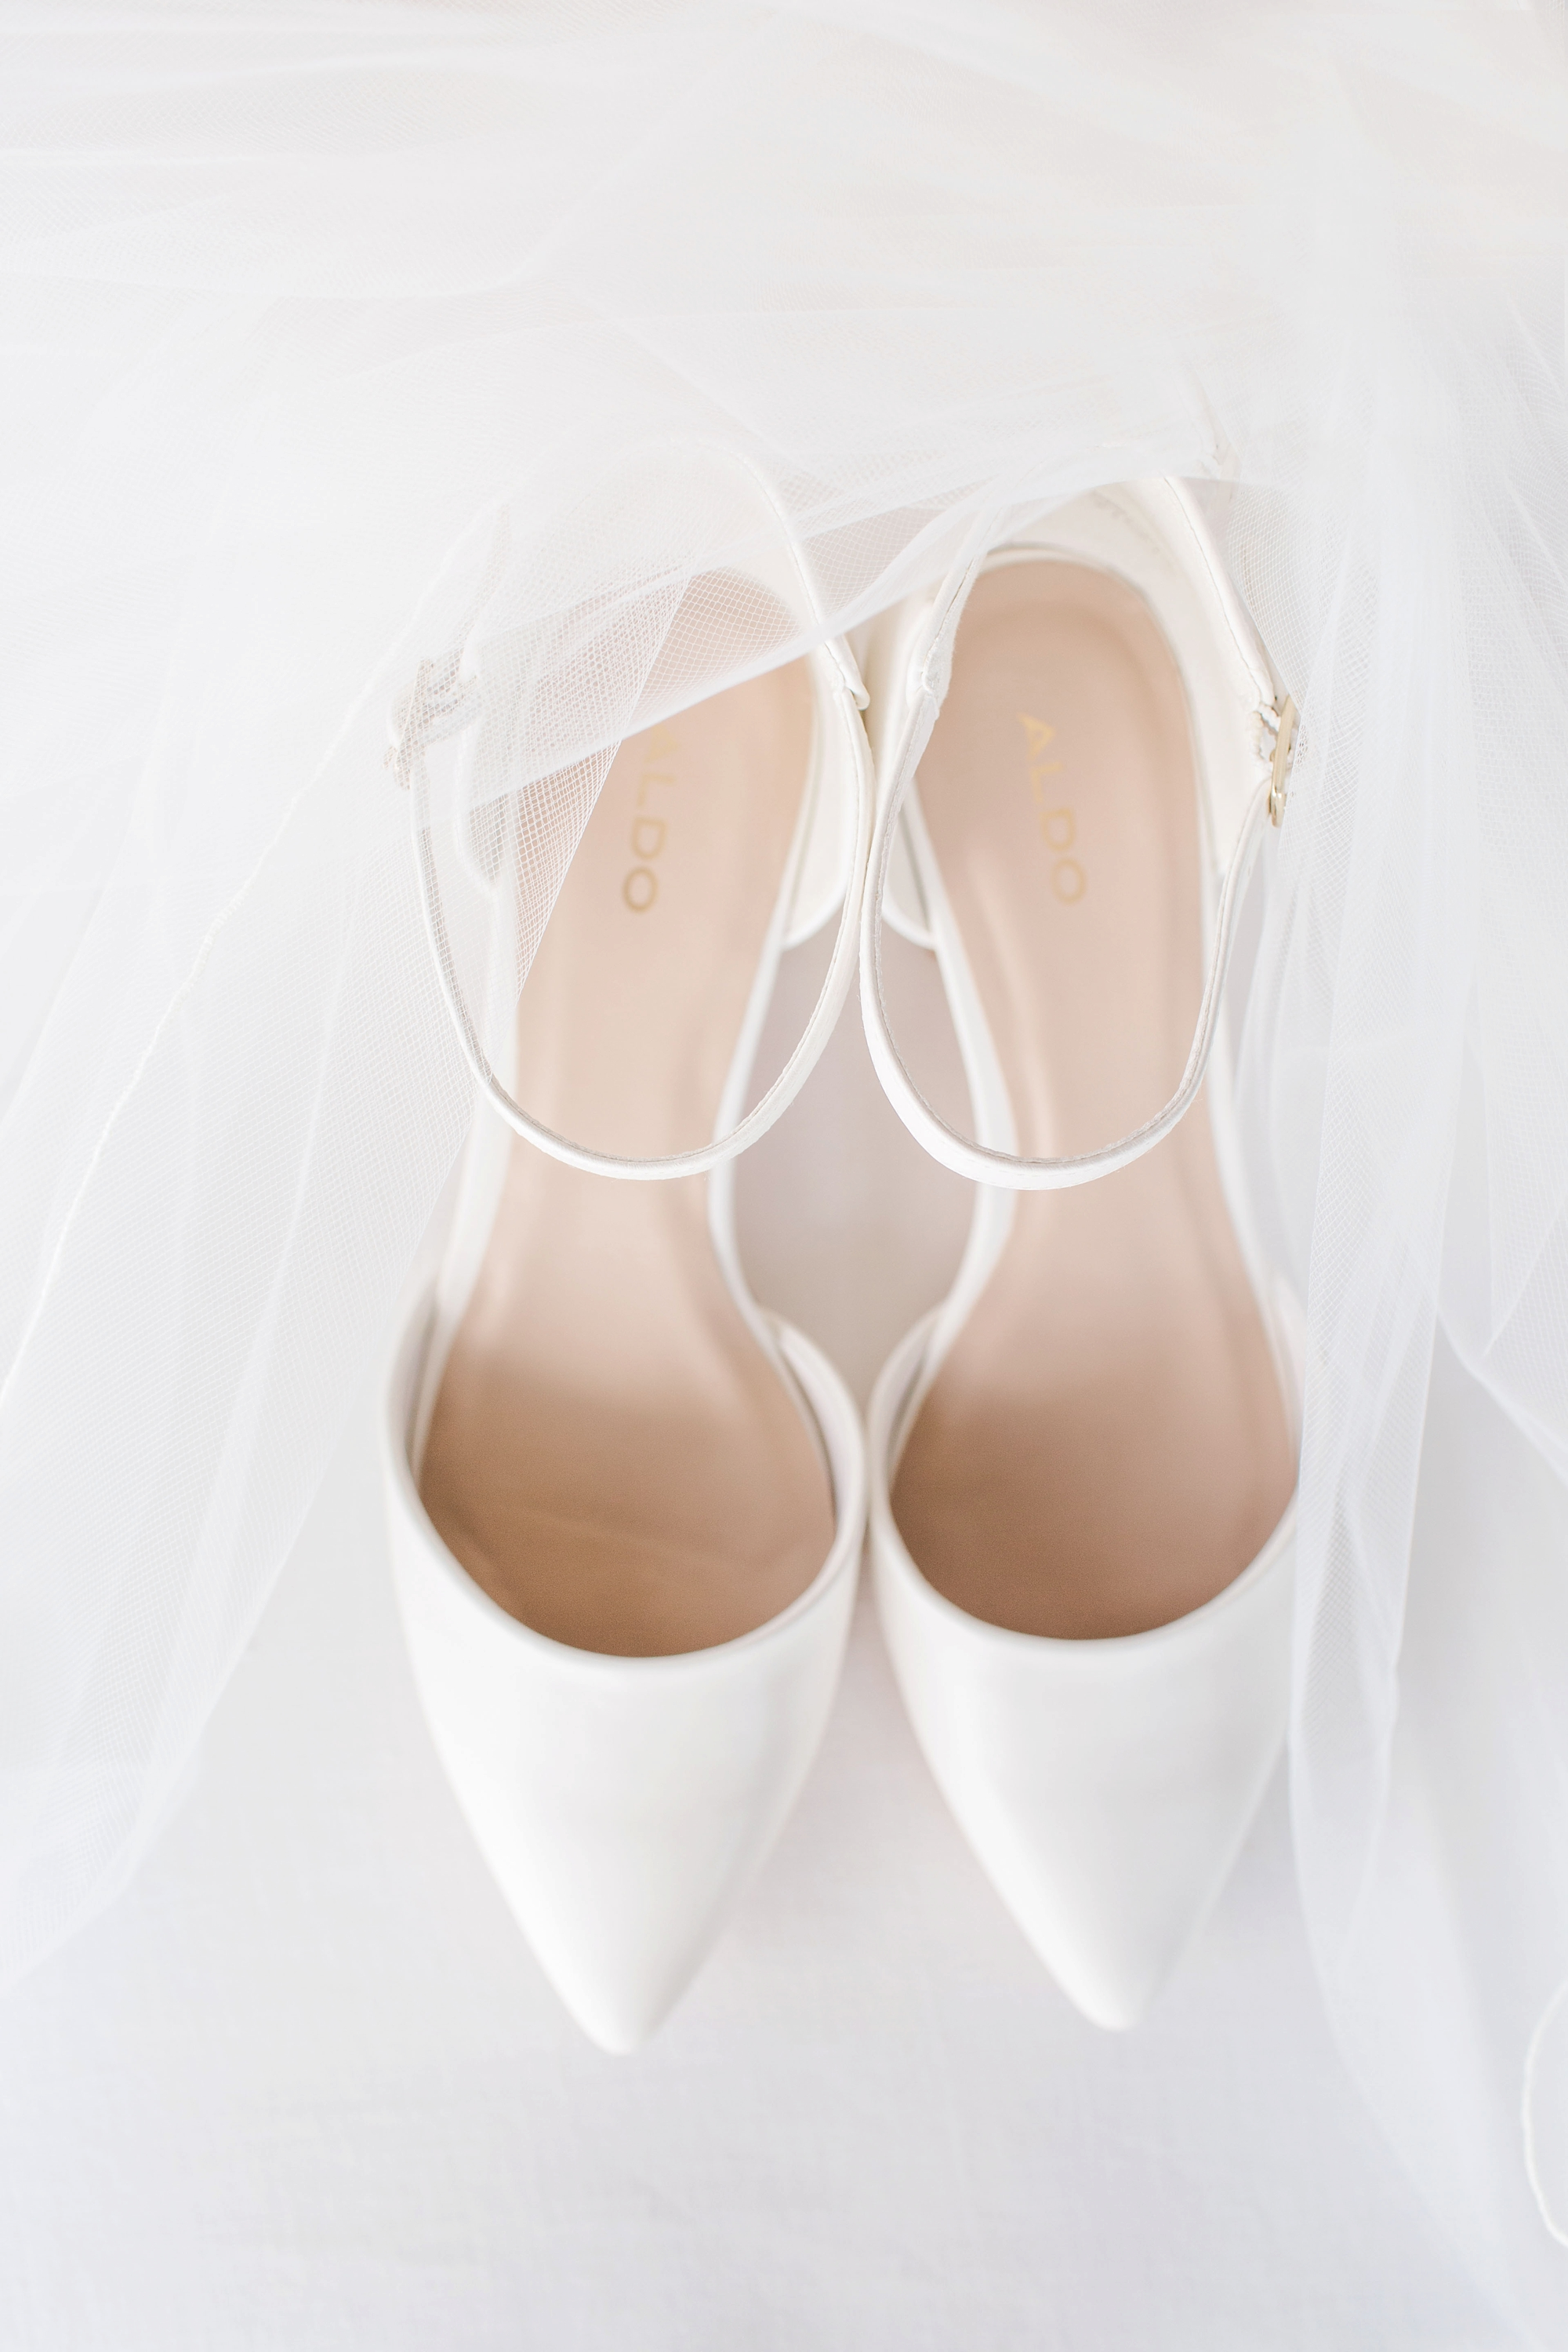 Natalie Broach Photography | Riano Wedding | Palencia Club Wedding | Jacksonville Florida Wedding Photographer |Wedding Shoes